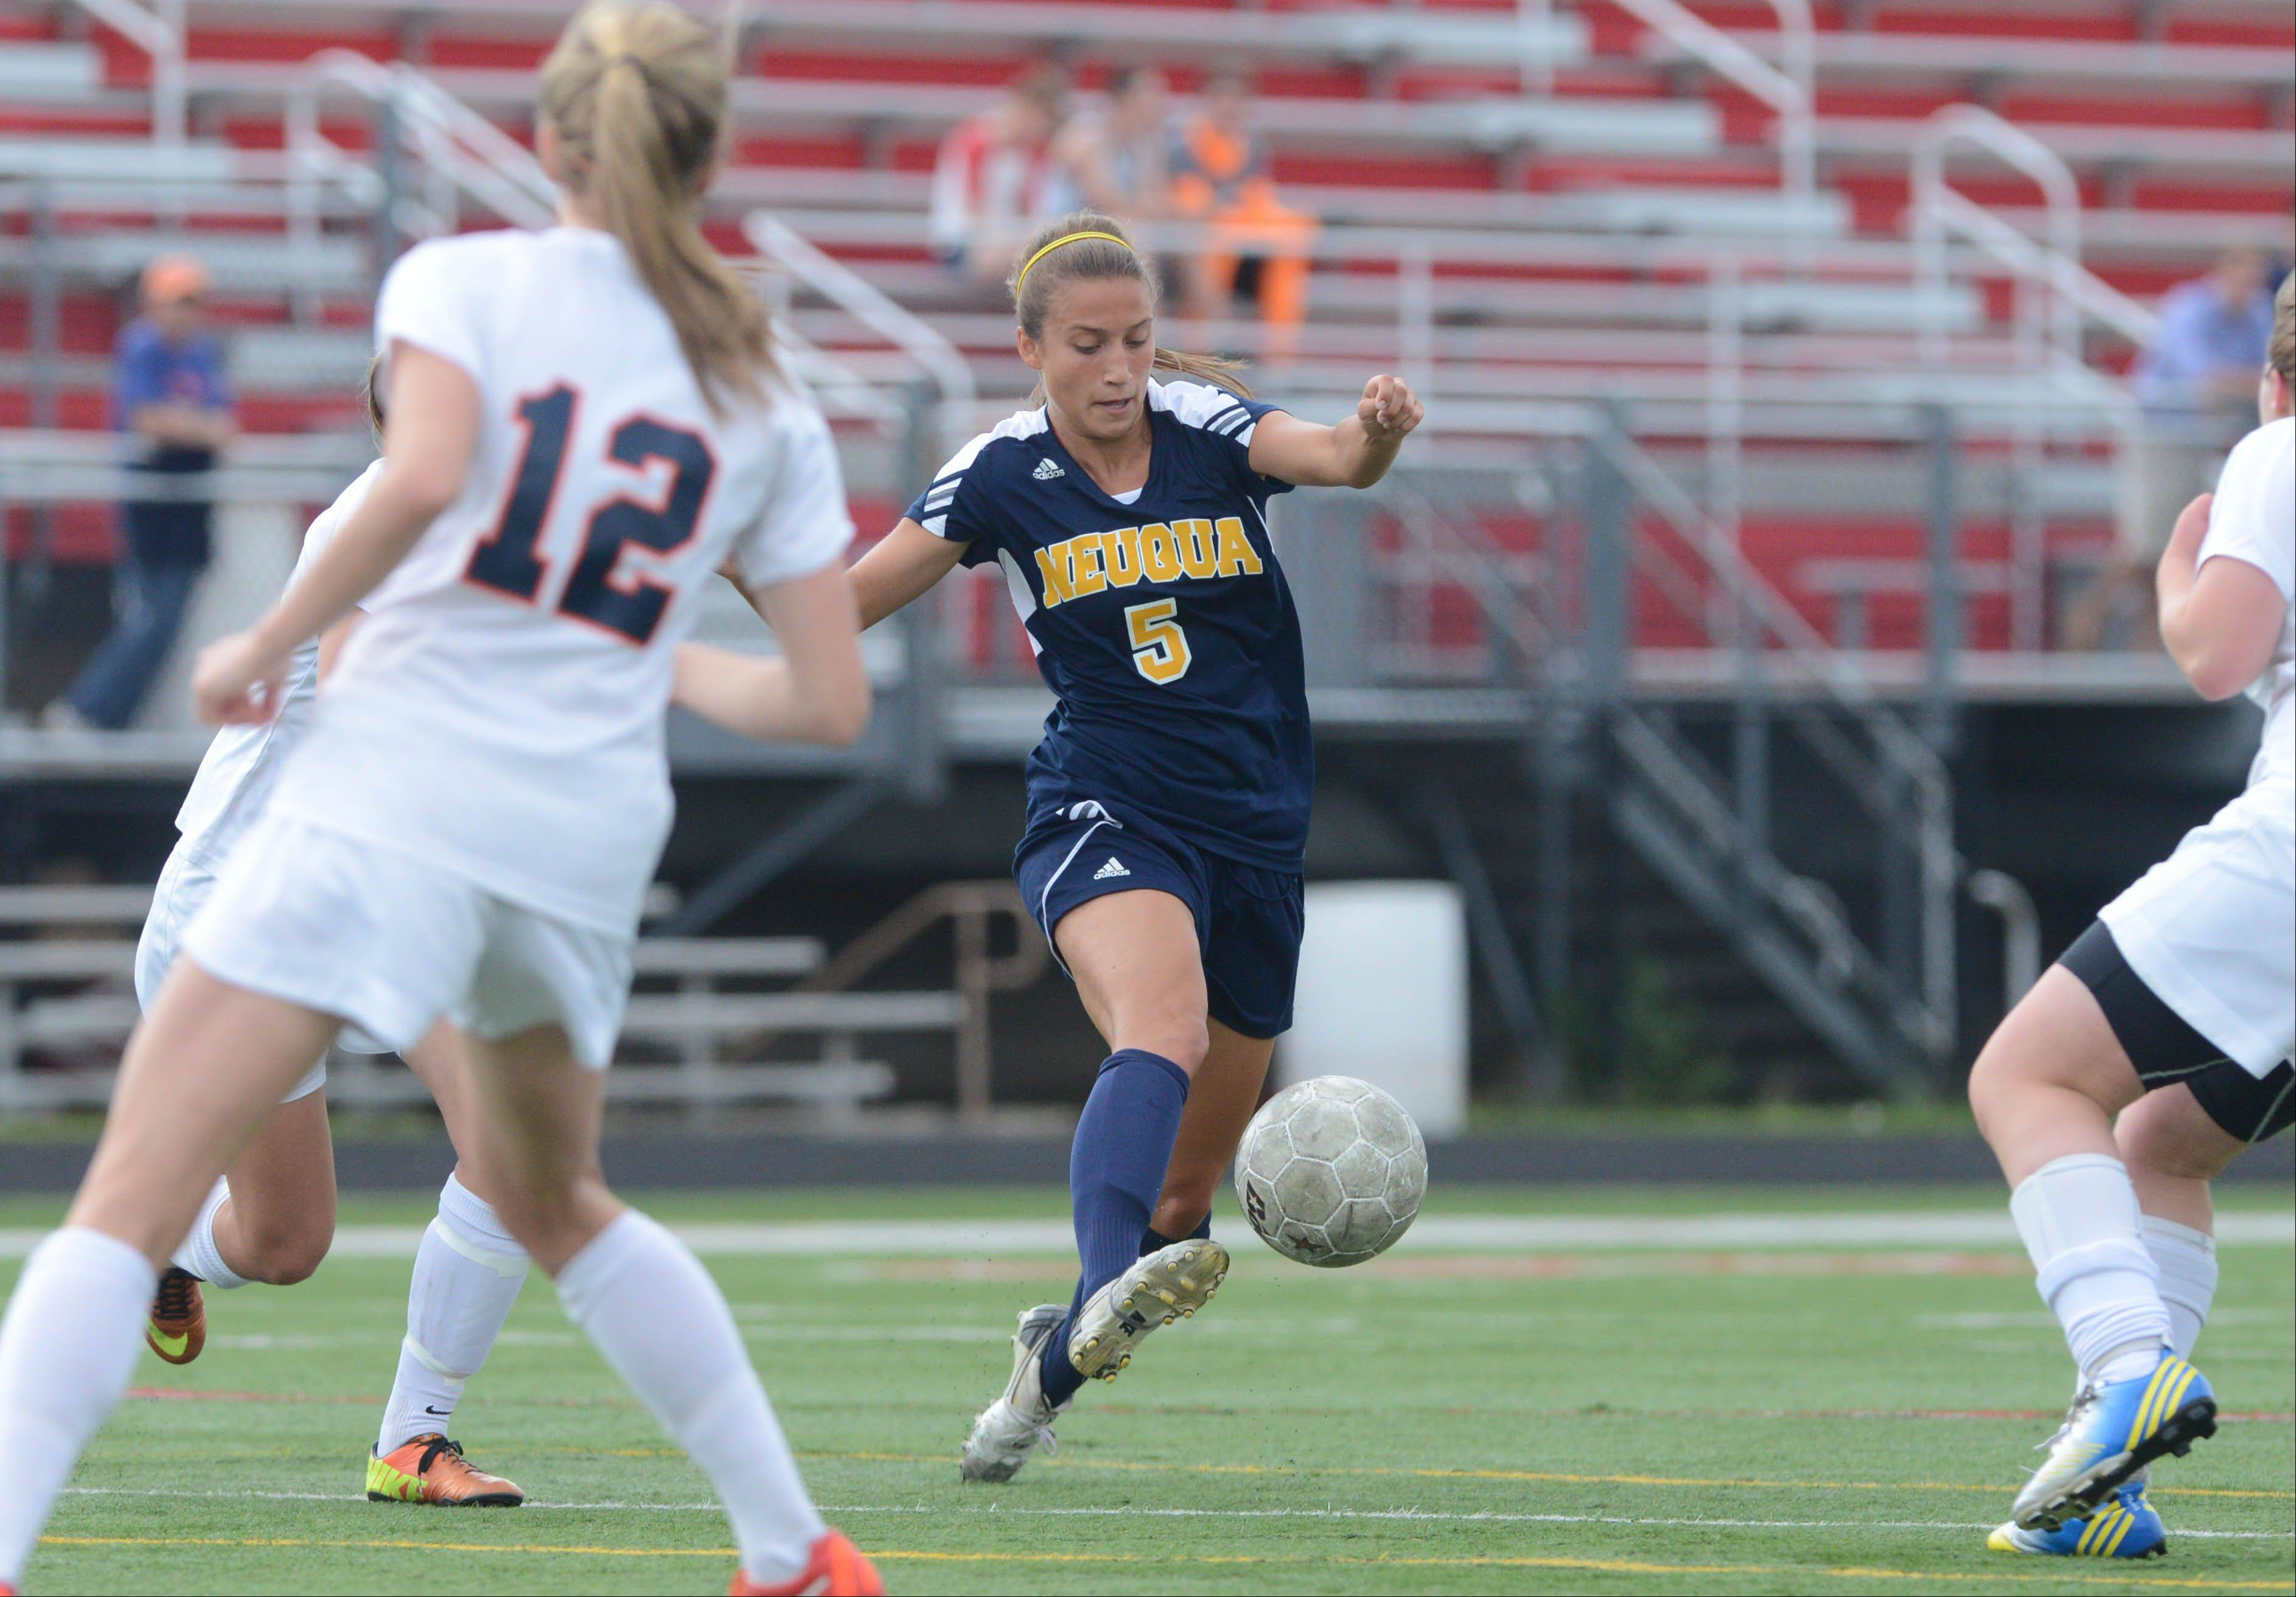 Hope D'Addario of Neuqua moves the ball during the Class 4A Bolingbrook girls soccer semifinals Wednesday.